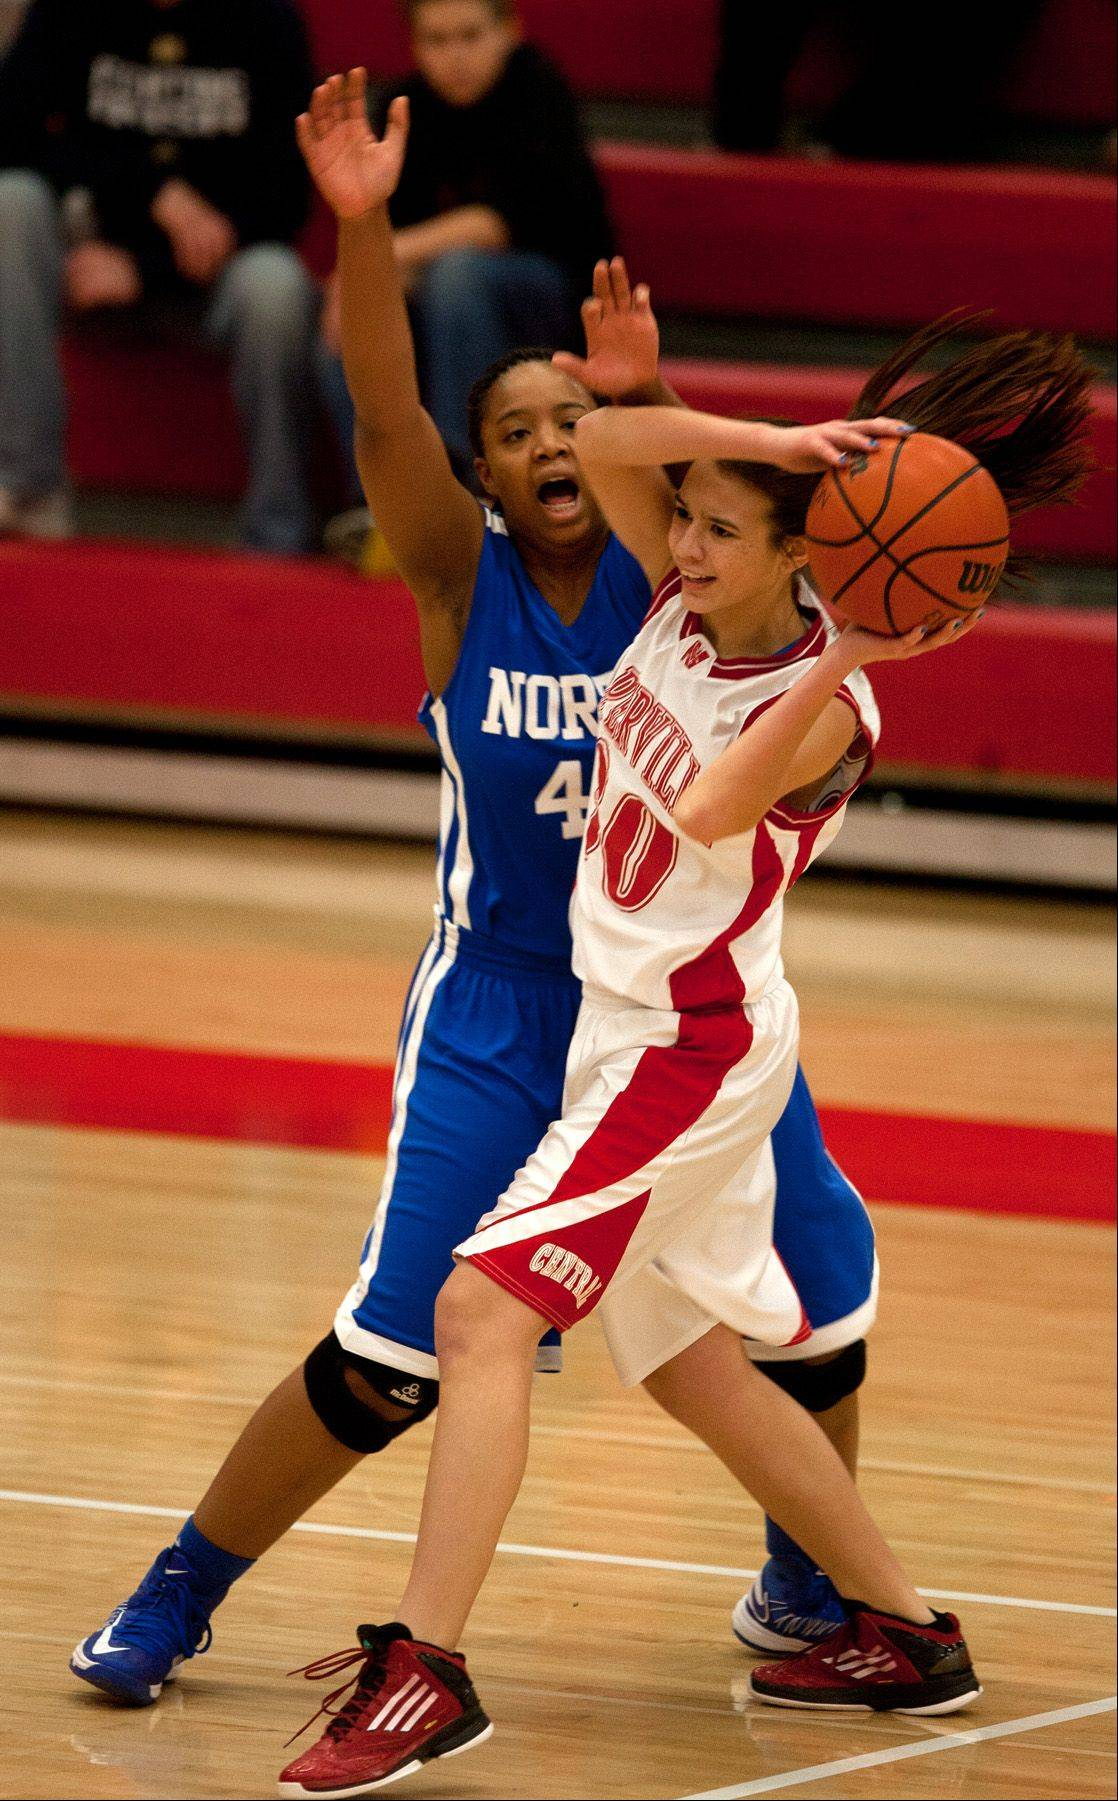 Images from the Wheaton North vs. Naperville Central girls basketball game on Saturday, Jan. 5, 2013.